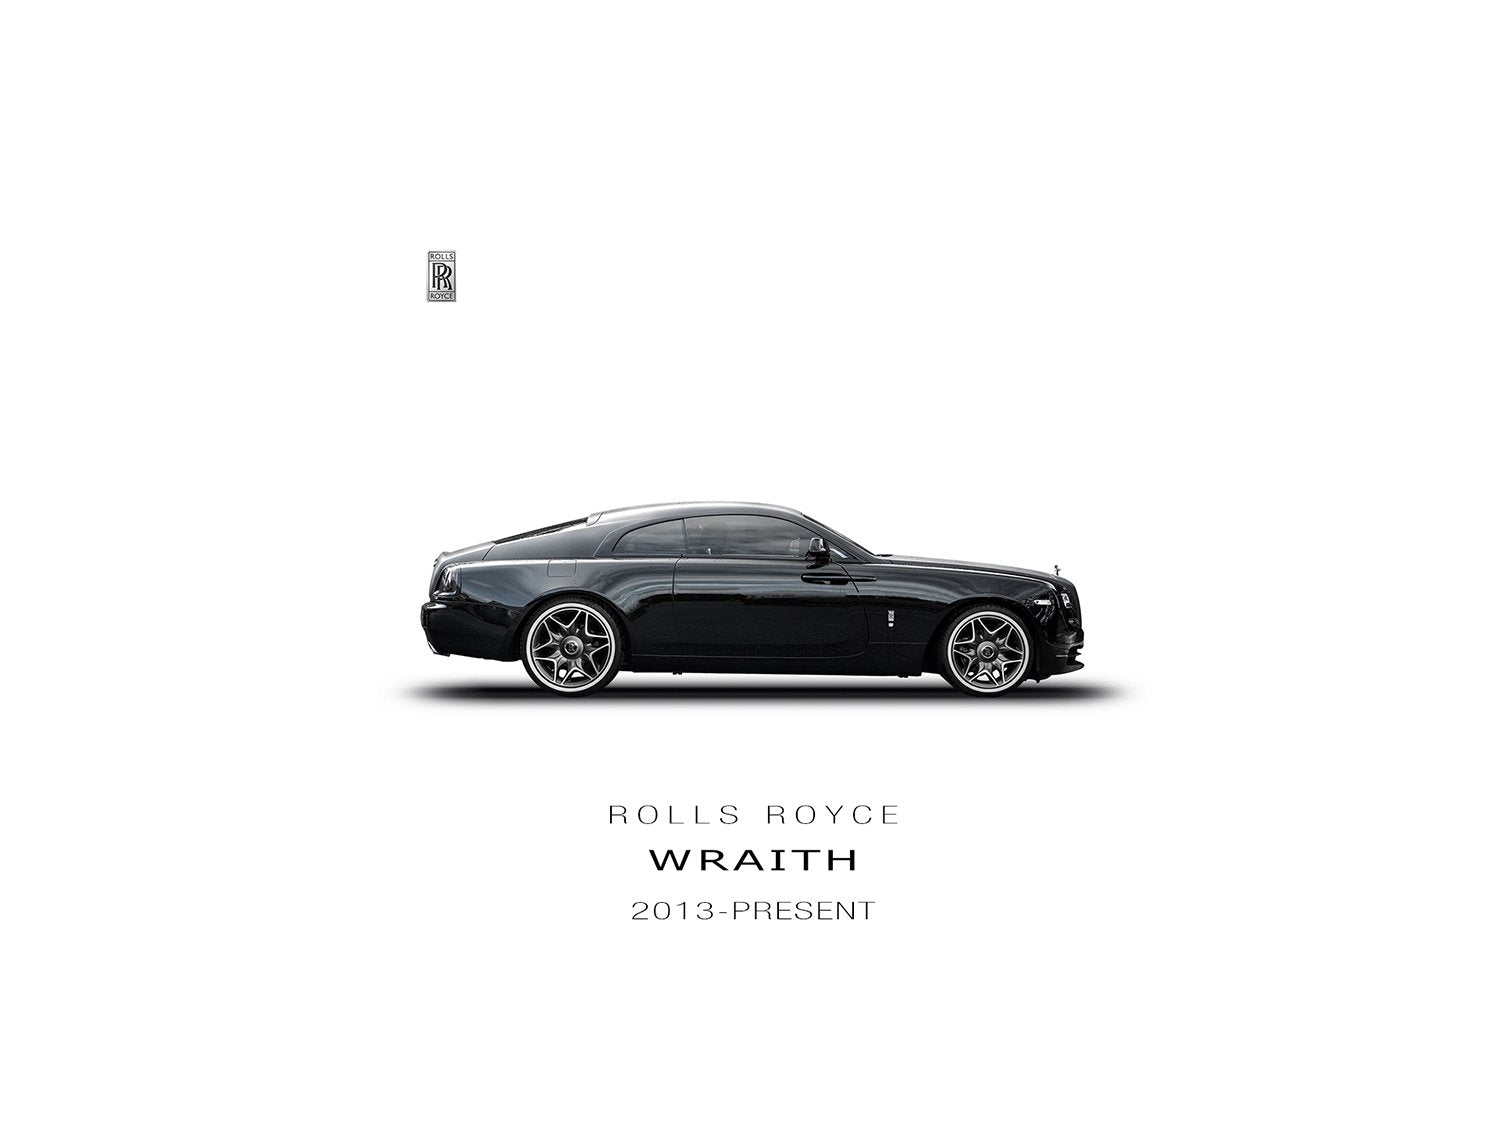 Rolls Royce Wraith (2013-Present) Tailored Conversion by Kahn - Image 306